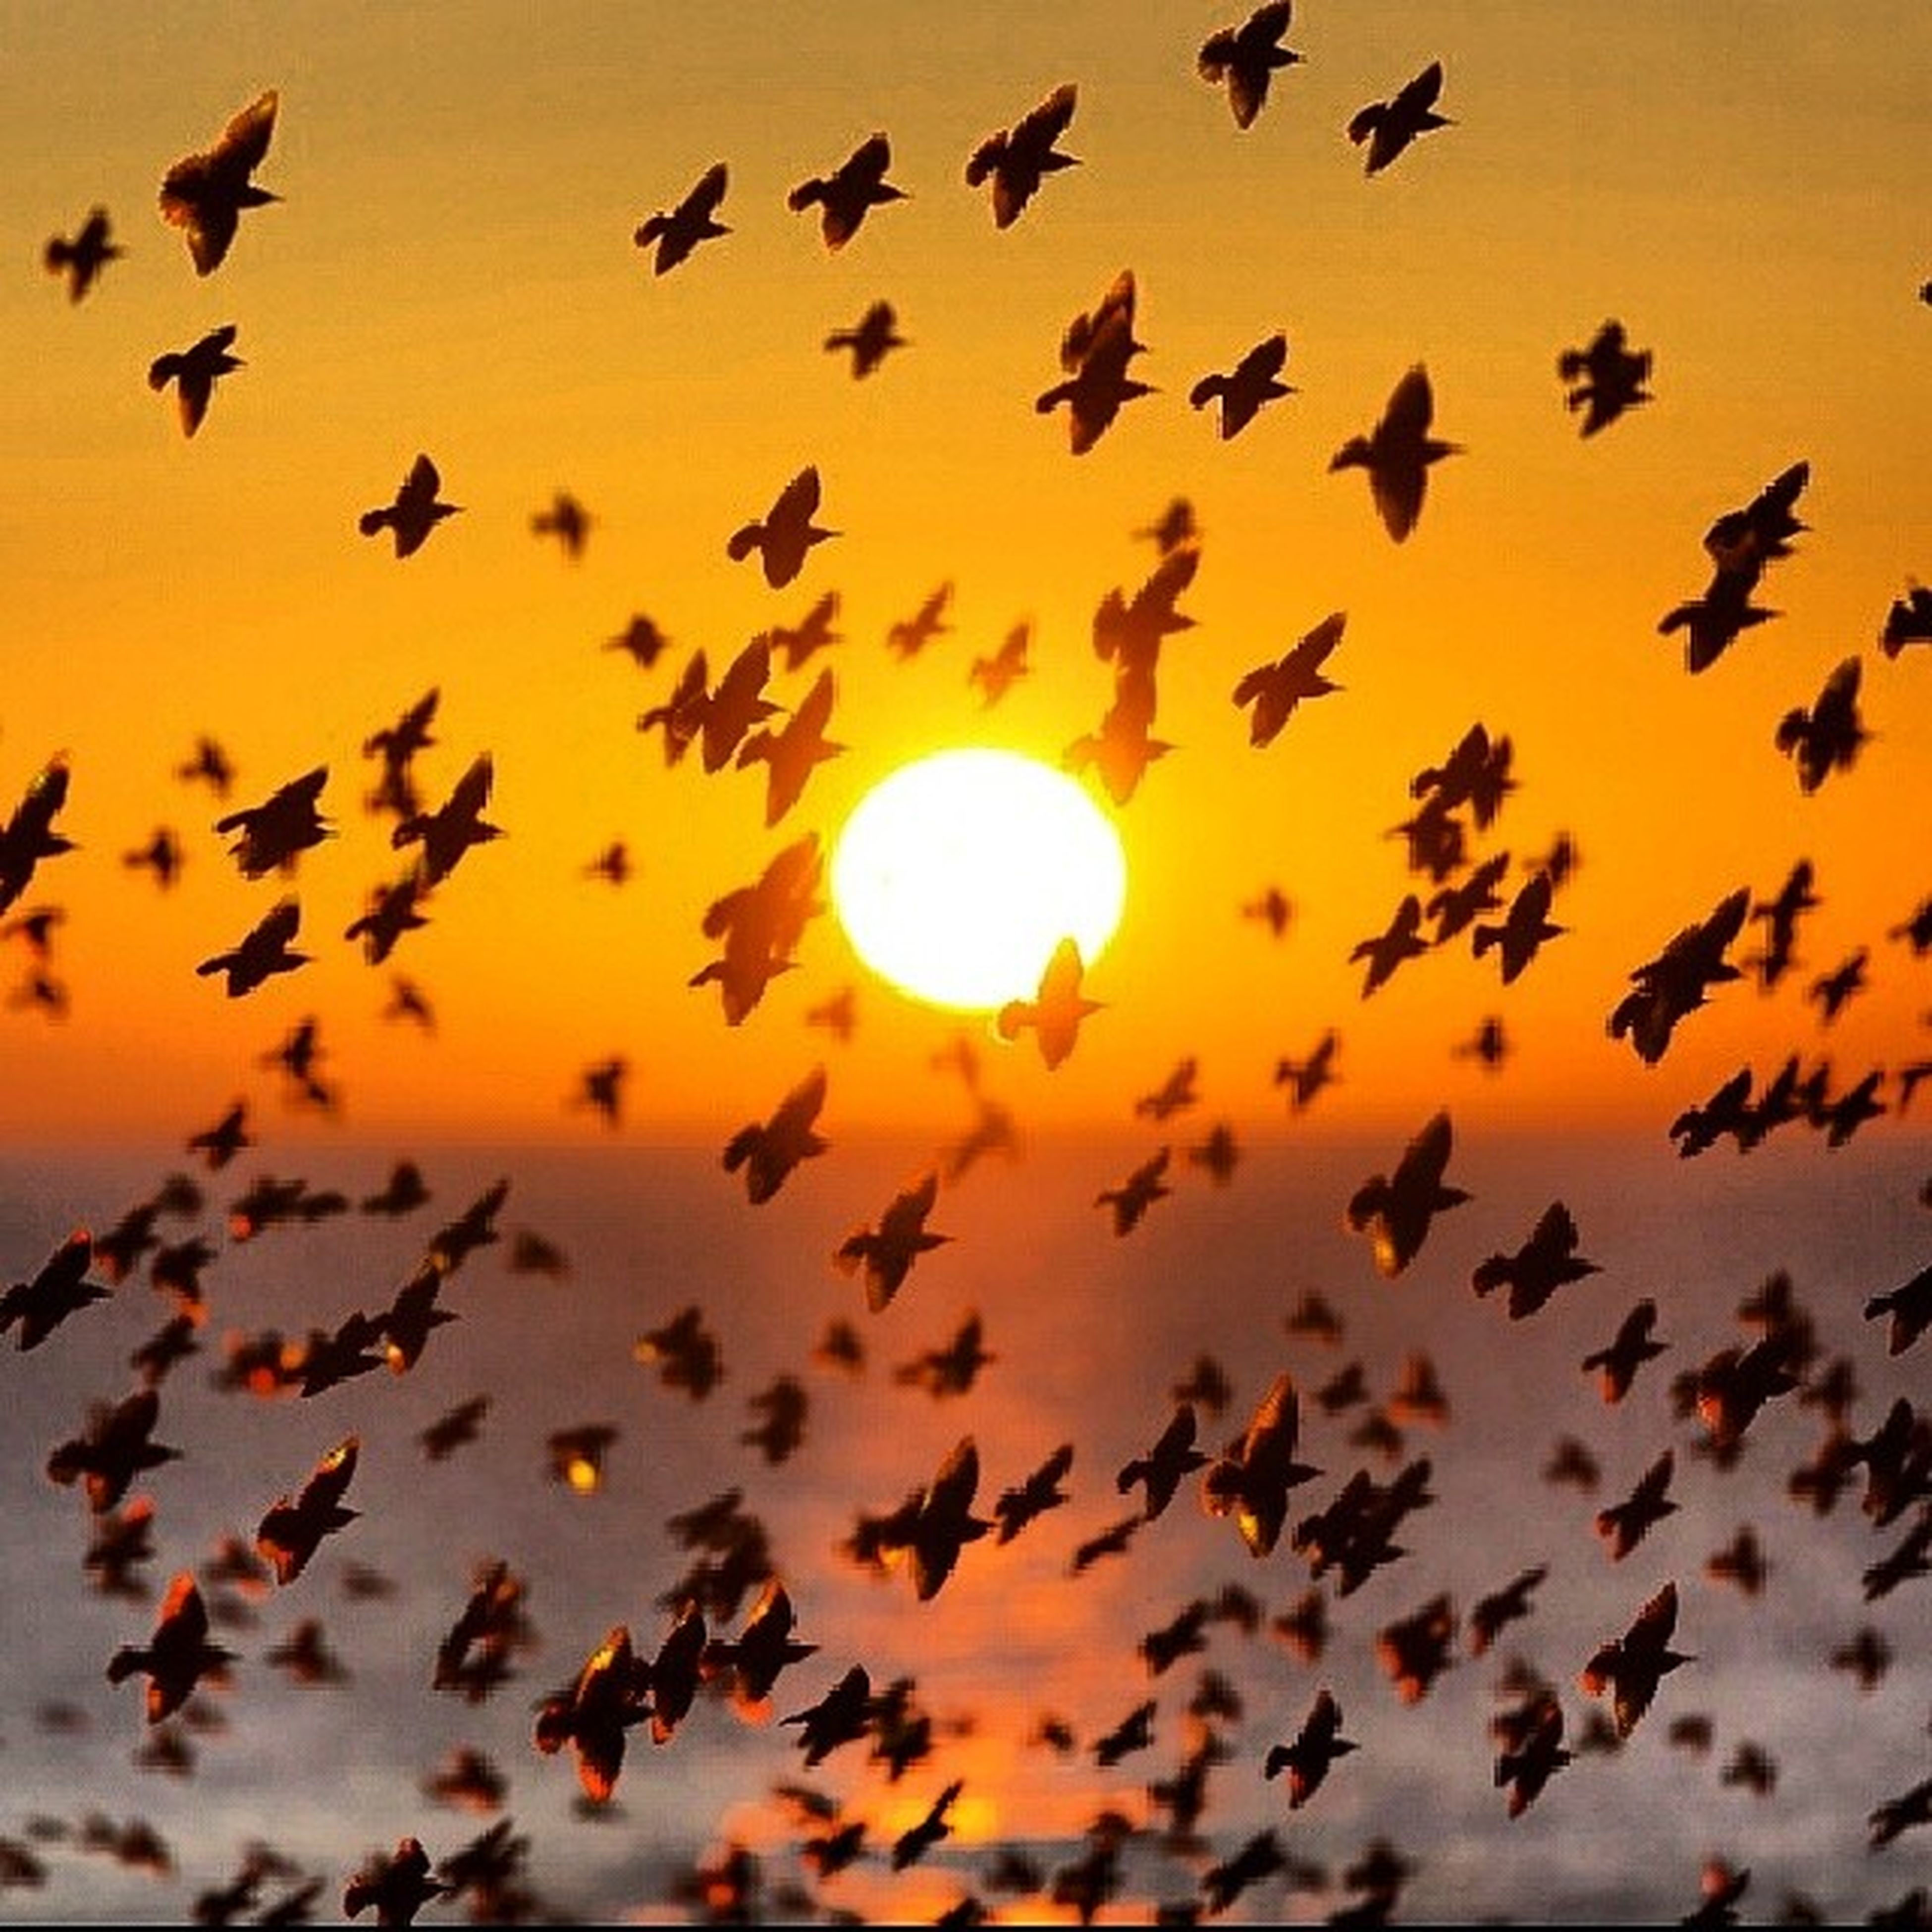 bird, flying, sunset, animal themes, sun, flock of birds, low angle view, animals in the wild, wildlife, sky, silhouette, orange color, beauty in nature, nature, scenics, mid-air, tranquility, outdoors, sunlight